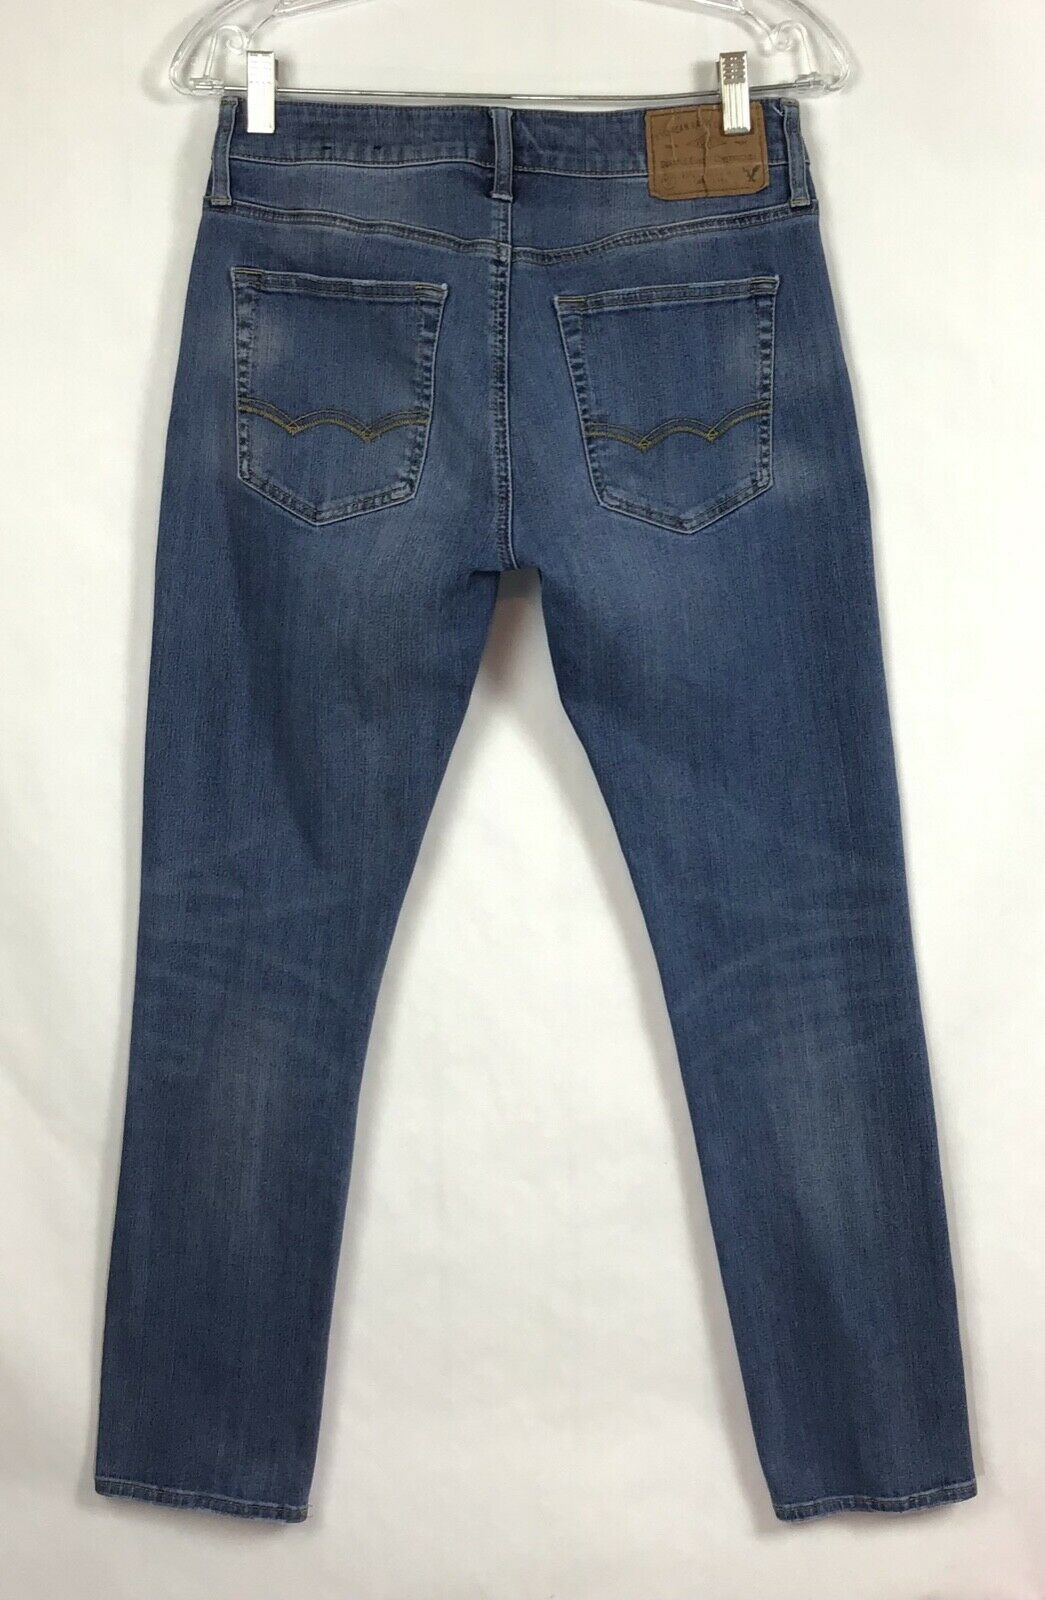 American Eagle Outfittters AEO Mens Denim Jeans 29x30 360 Extreme Flex Stretch   image 3